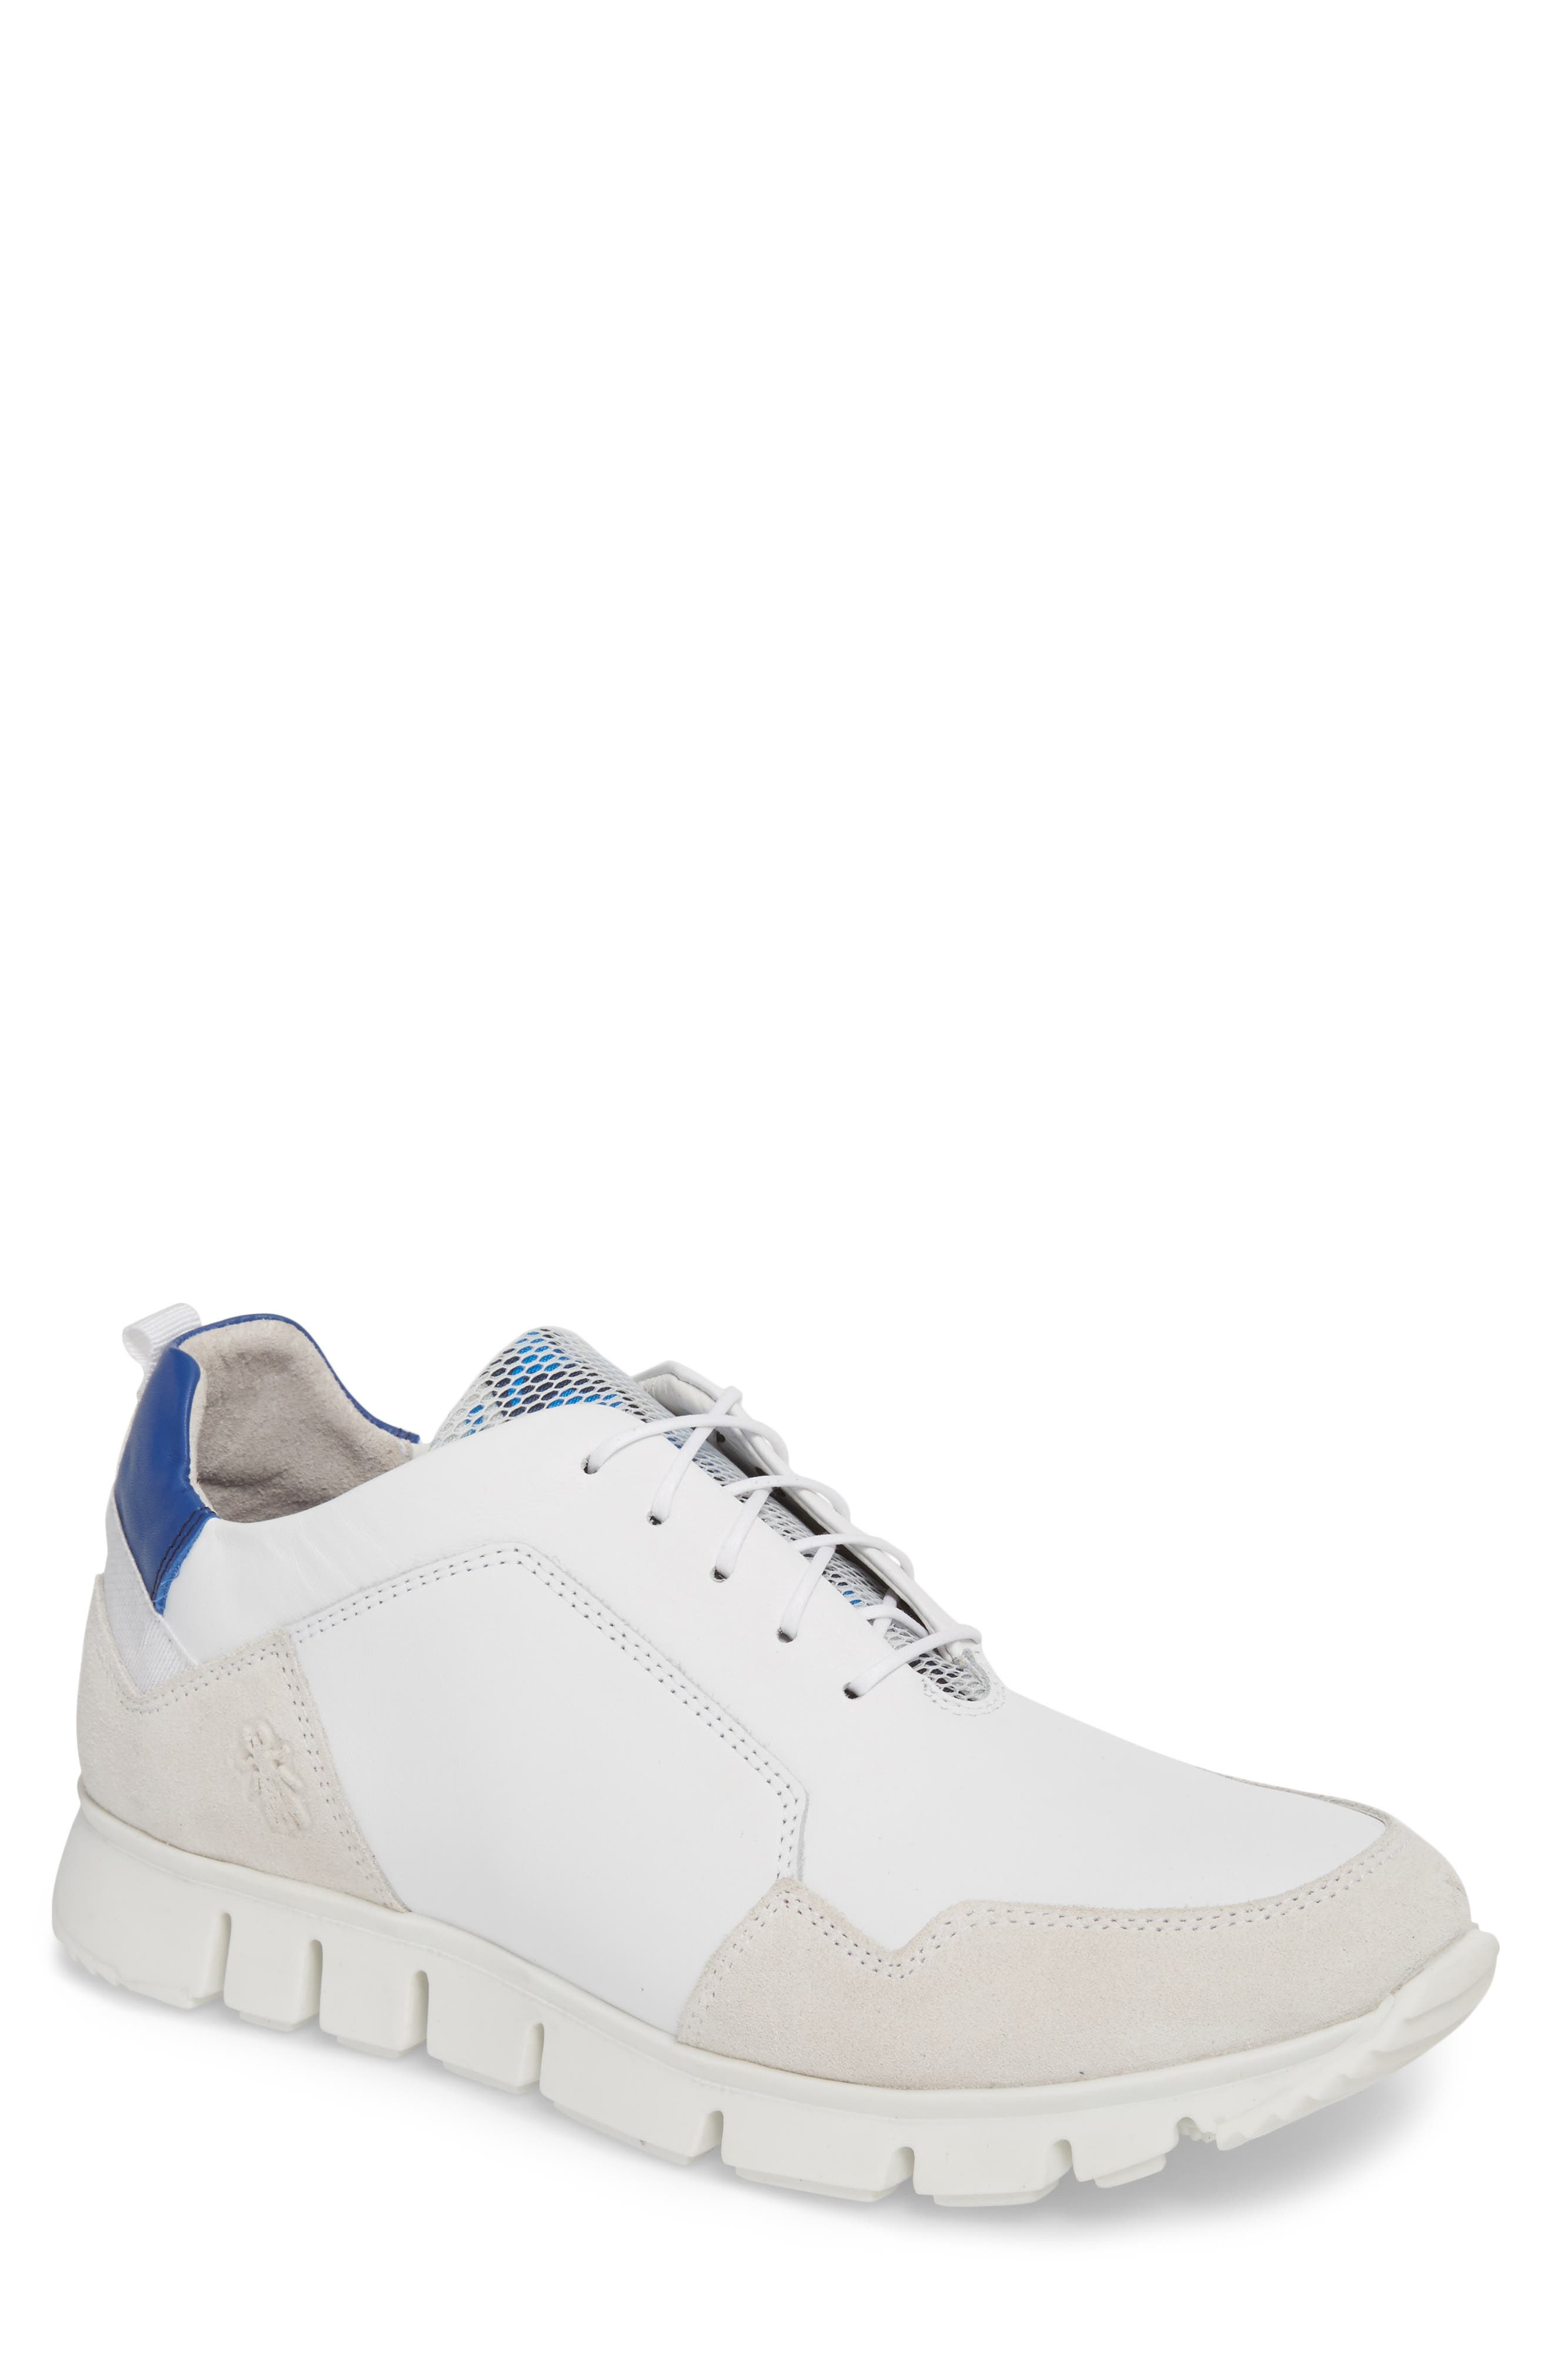 Sild Low Top Sneaker,                         Main,                         color, WHITE SUEDE/ LEATHER